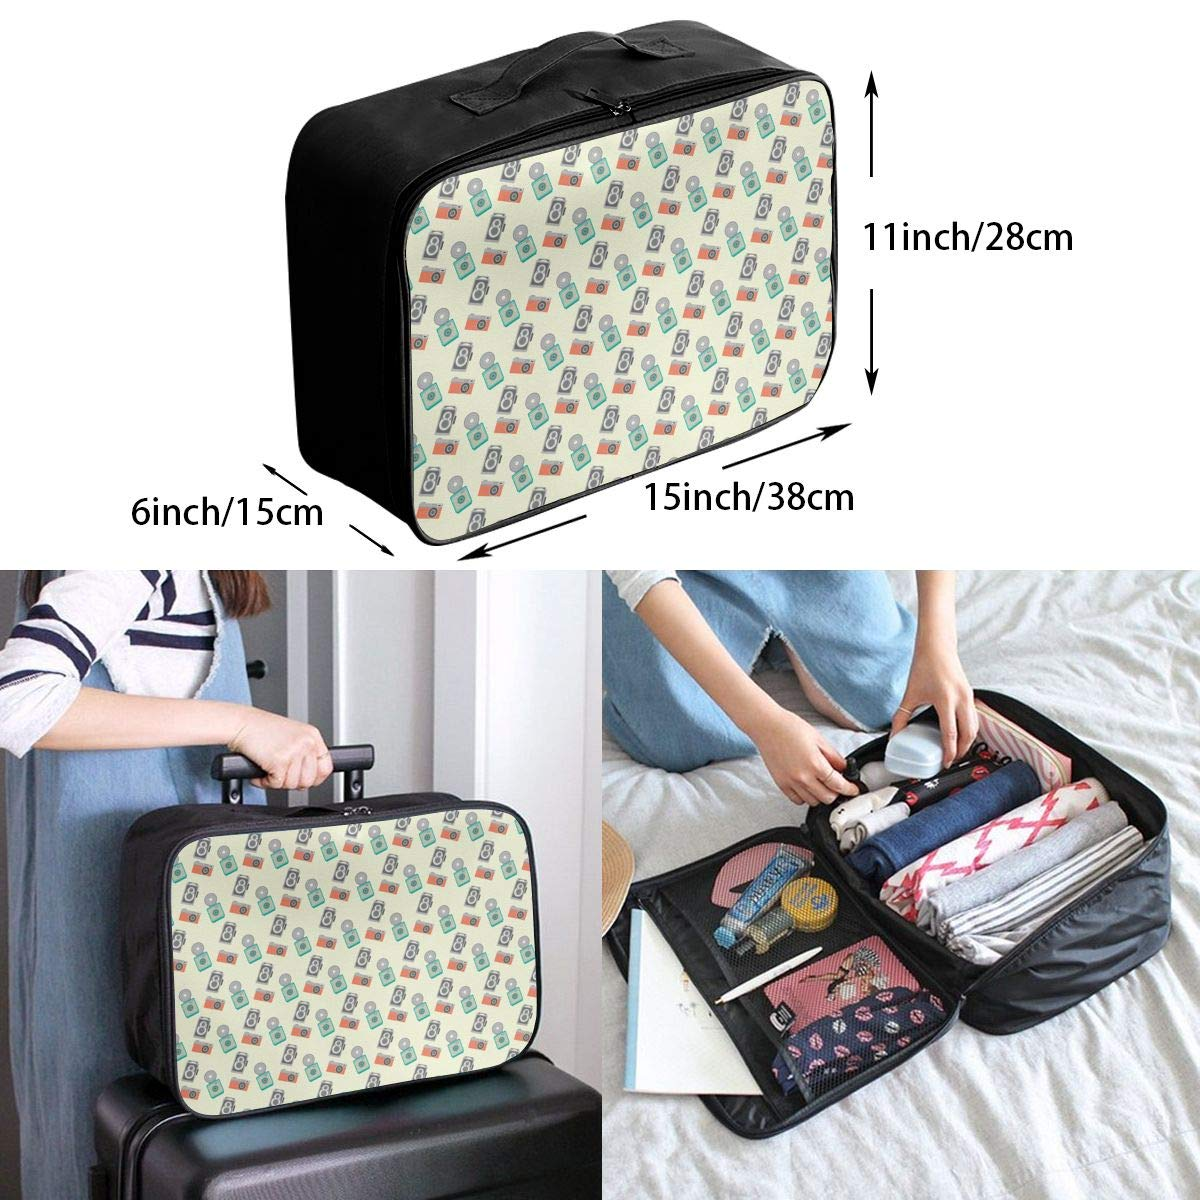 YueLJB Camera Pattern Lightweight Large Capacity Portable Luggage Bag Travel Duffel Bag Storage Carry Luggage Duffle Tote Bag